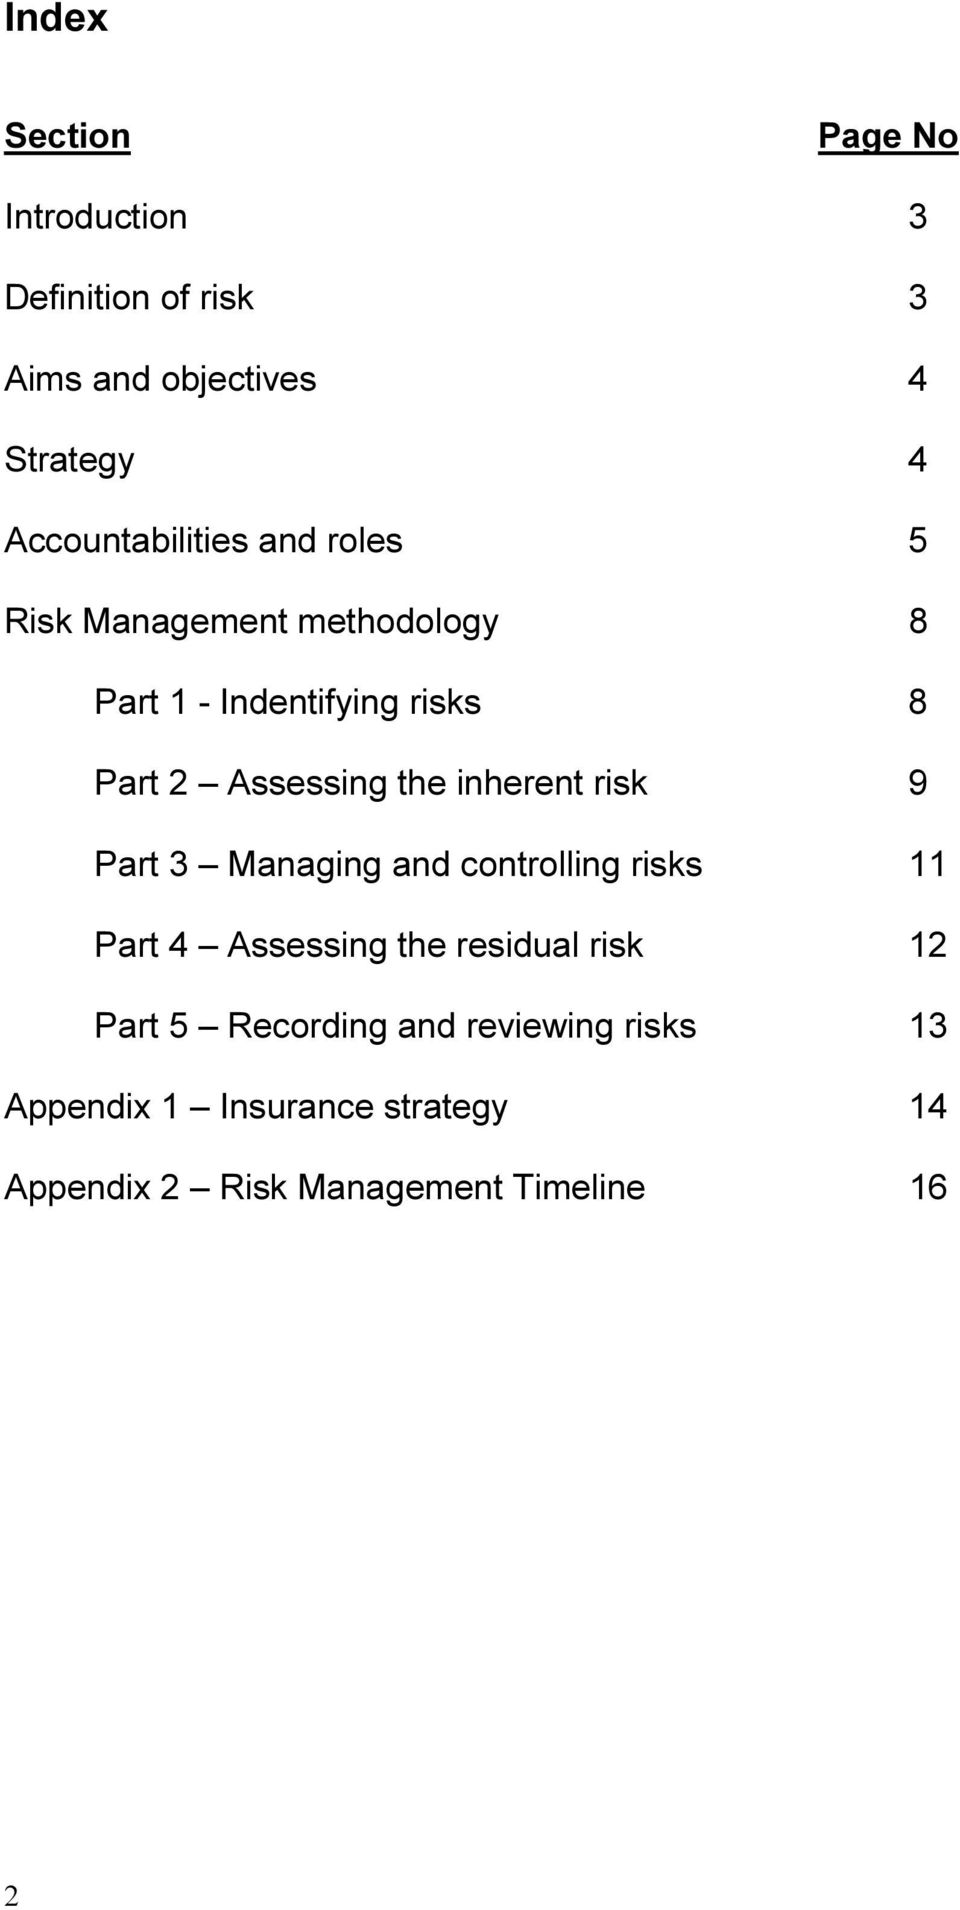 Assessing the inherent risk 9 Part 3 Managing and controlling risks 11 Part 4 Assessing the residual